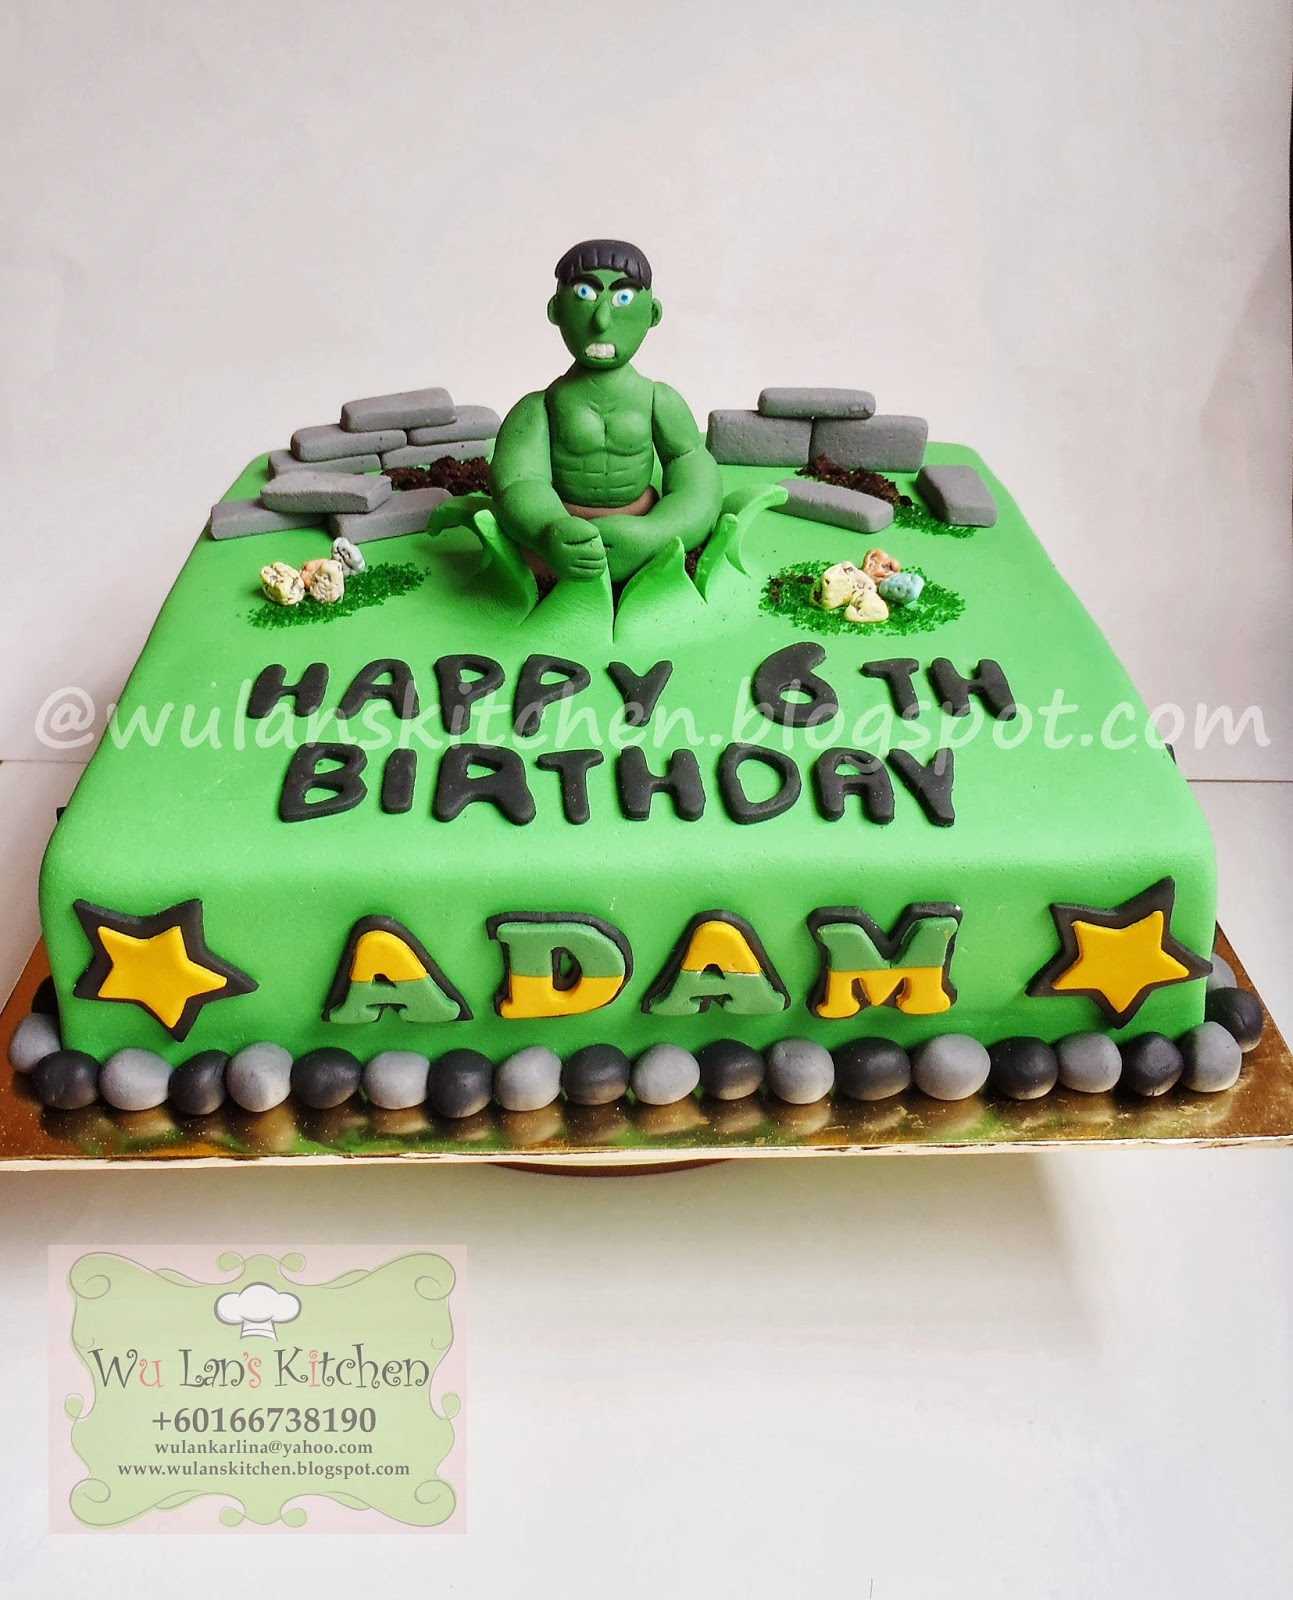 CHOCOLATE CAKE WITH HULK THEME